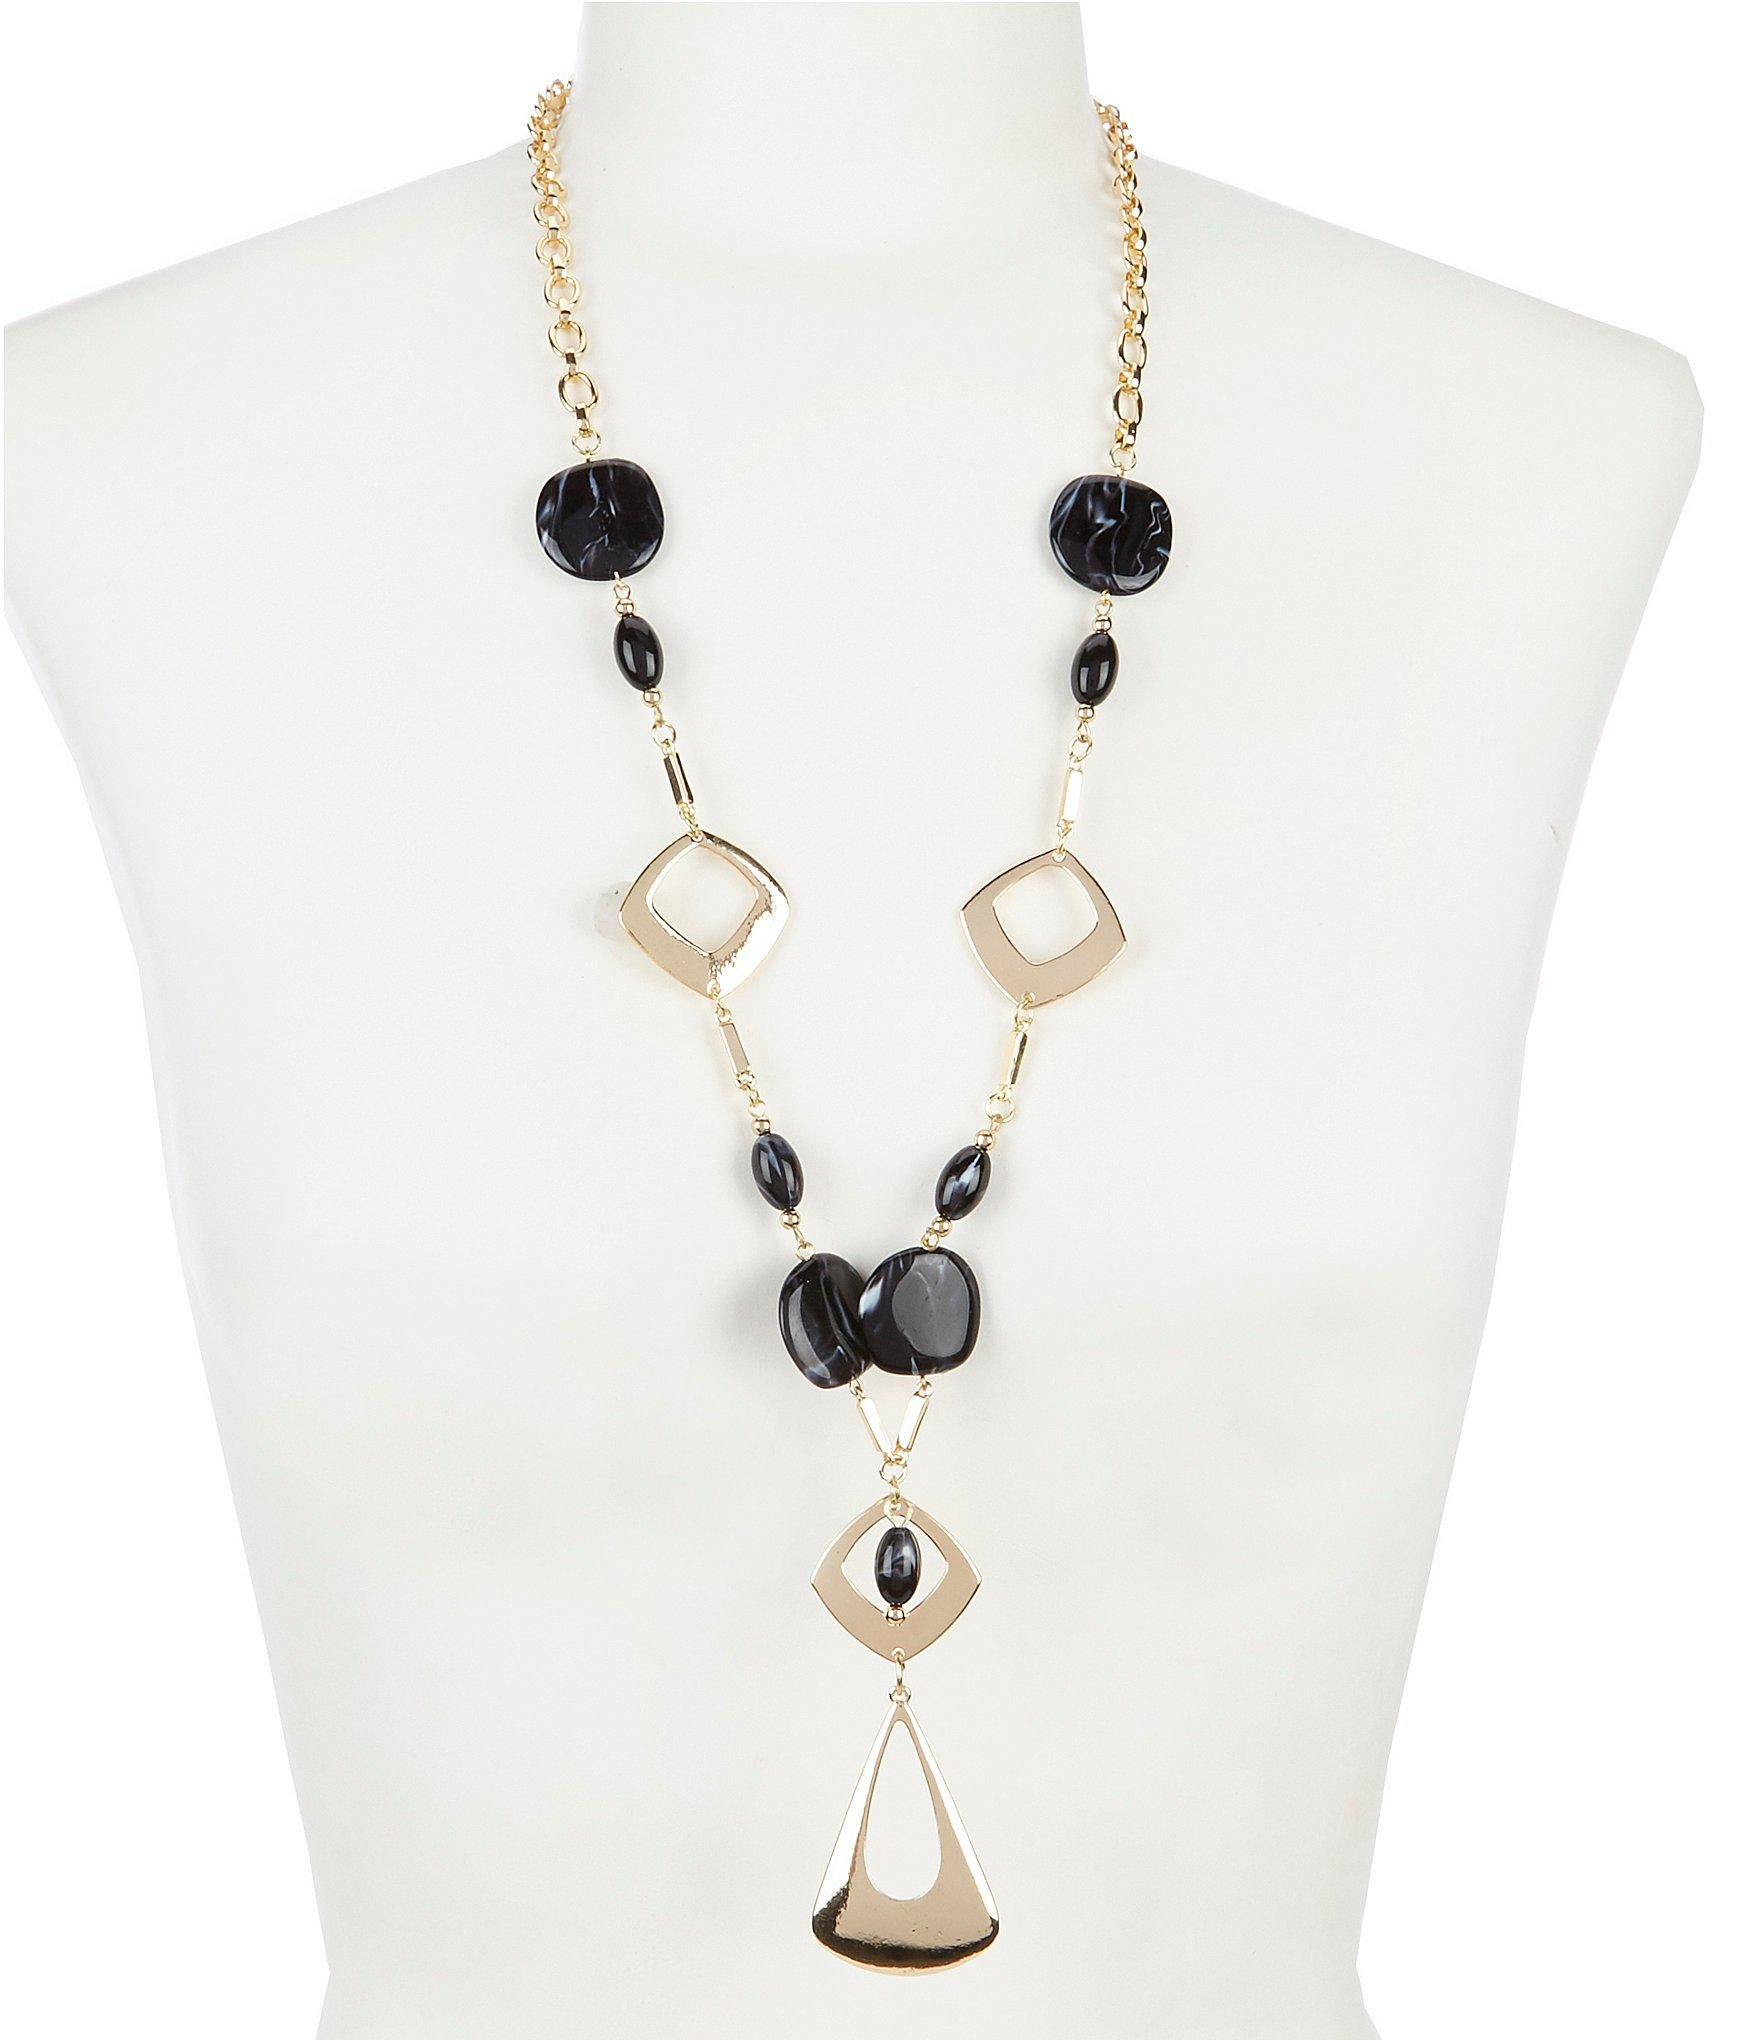 cceb8567d9366 Lyst - Dillard's Geometric Acrylic Y Necklace in White